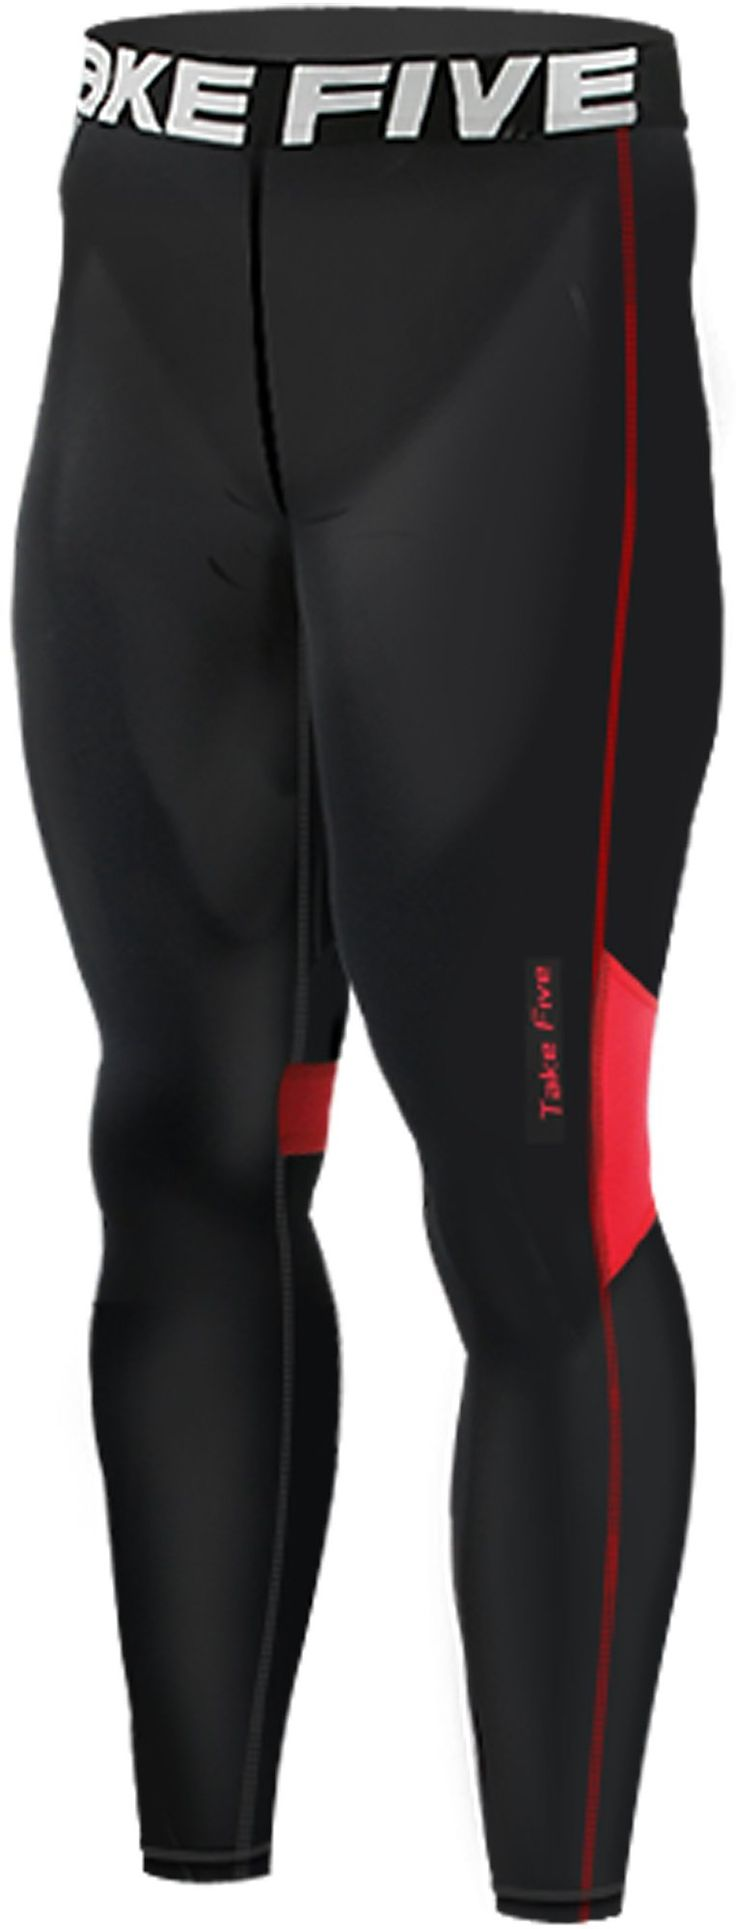 New 301 Mens Sports Skin Tight Compression Base Under Layers Long Pants Black (S). Men's long Pants compression Tights made using Take Five technology. UVA/UVB Protection - Take Five compressoin protects your skin from UVA/UVB radiation during your outdoor workout. Great for skiing, snowboarding, training, competing, and all weather sports and activities. Machine washable. Color : Black.